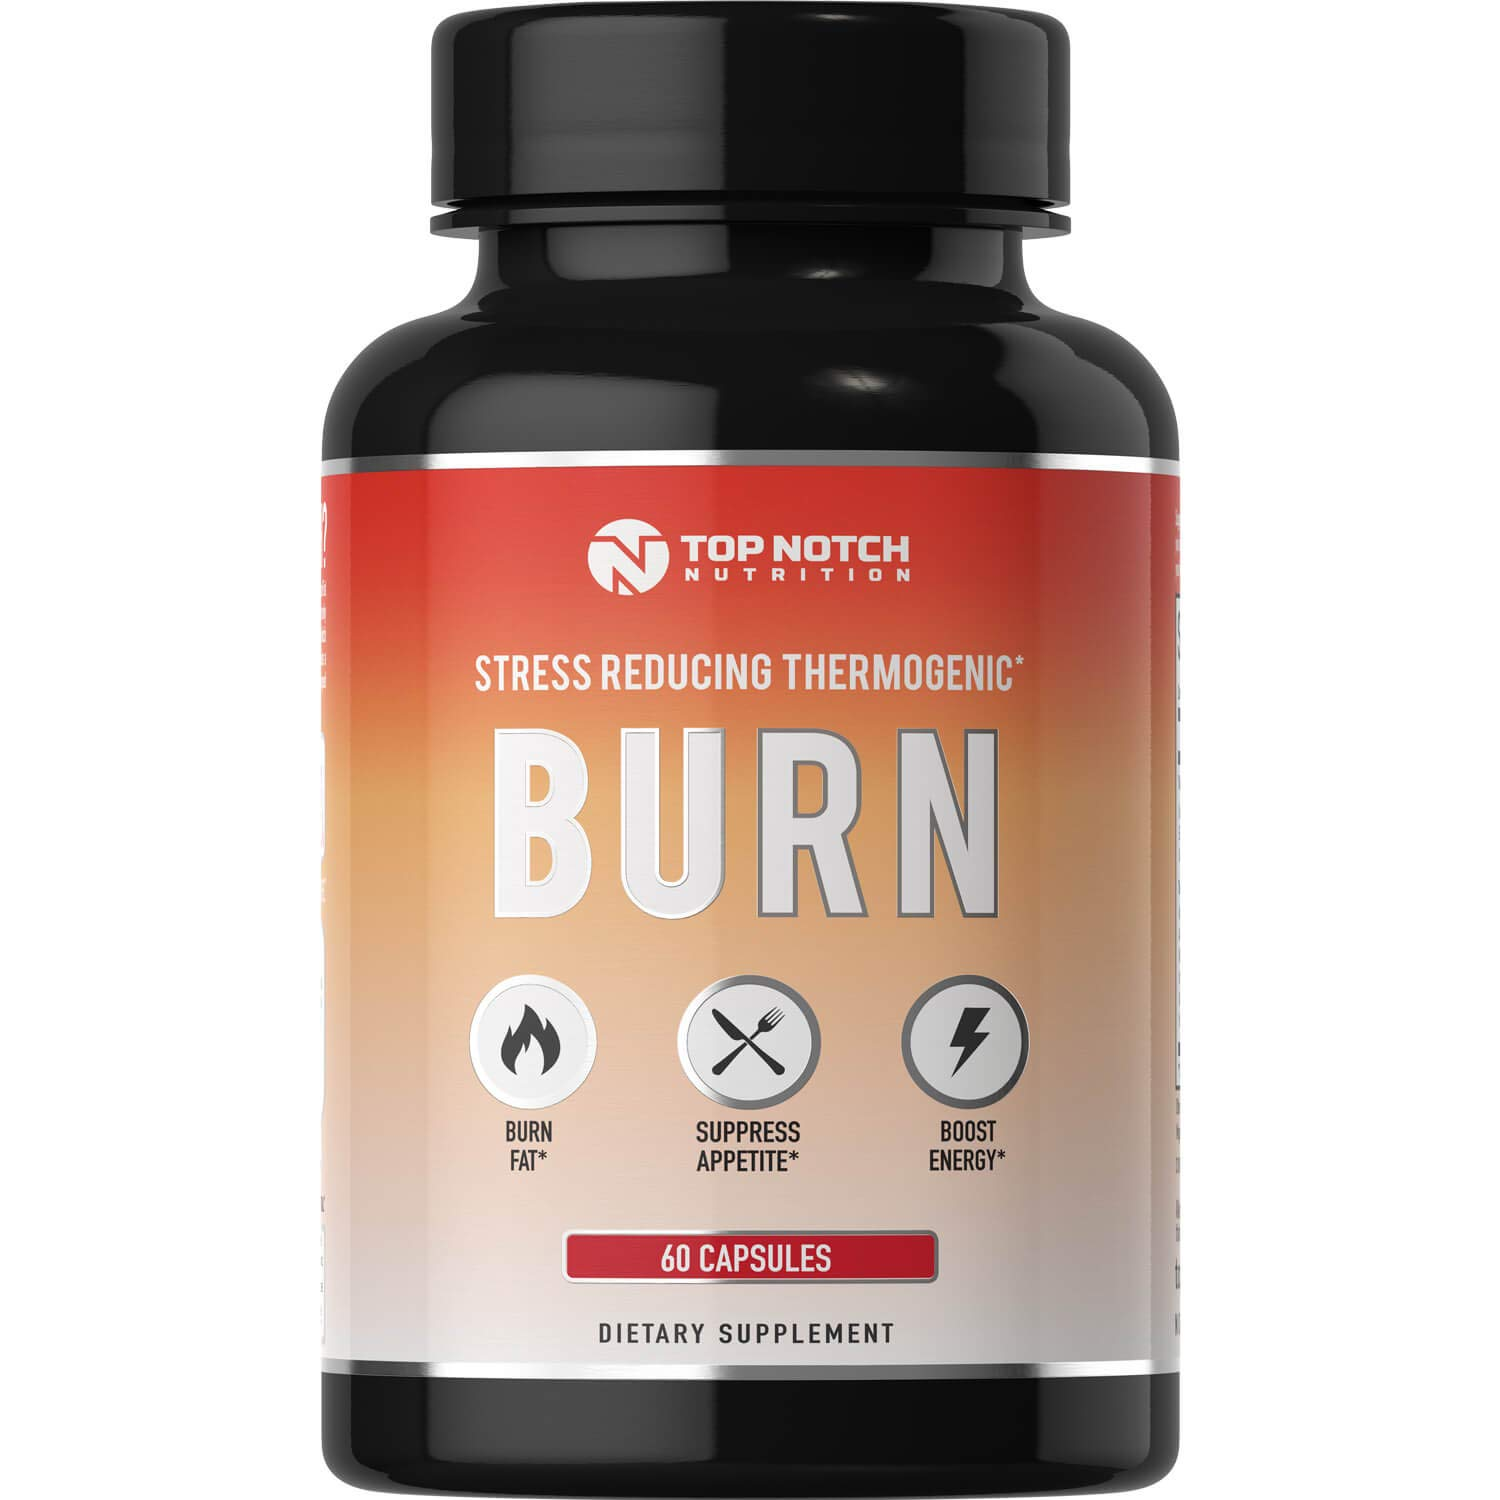 Top Notch Nutrition 4 in 1 Thermogenic Fat Burning Weight Loss Pills for Women and Men Energy Boost Appetite Suppressant Diet Pills Boost Metabolism Burns More Calories Manage Stress